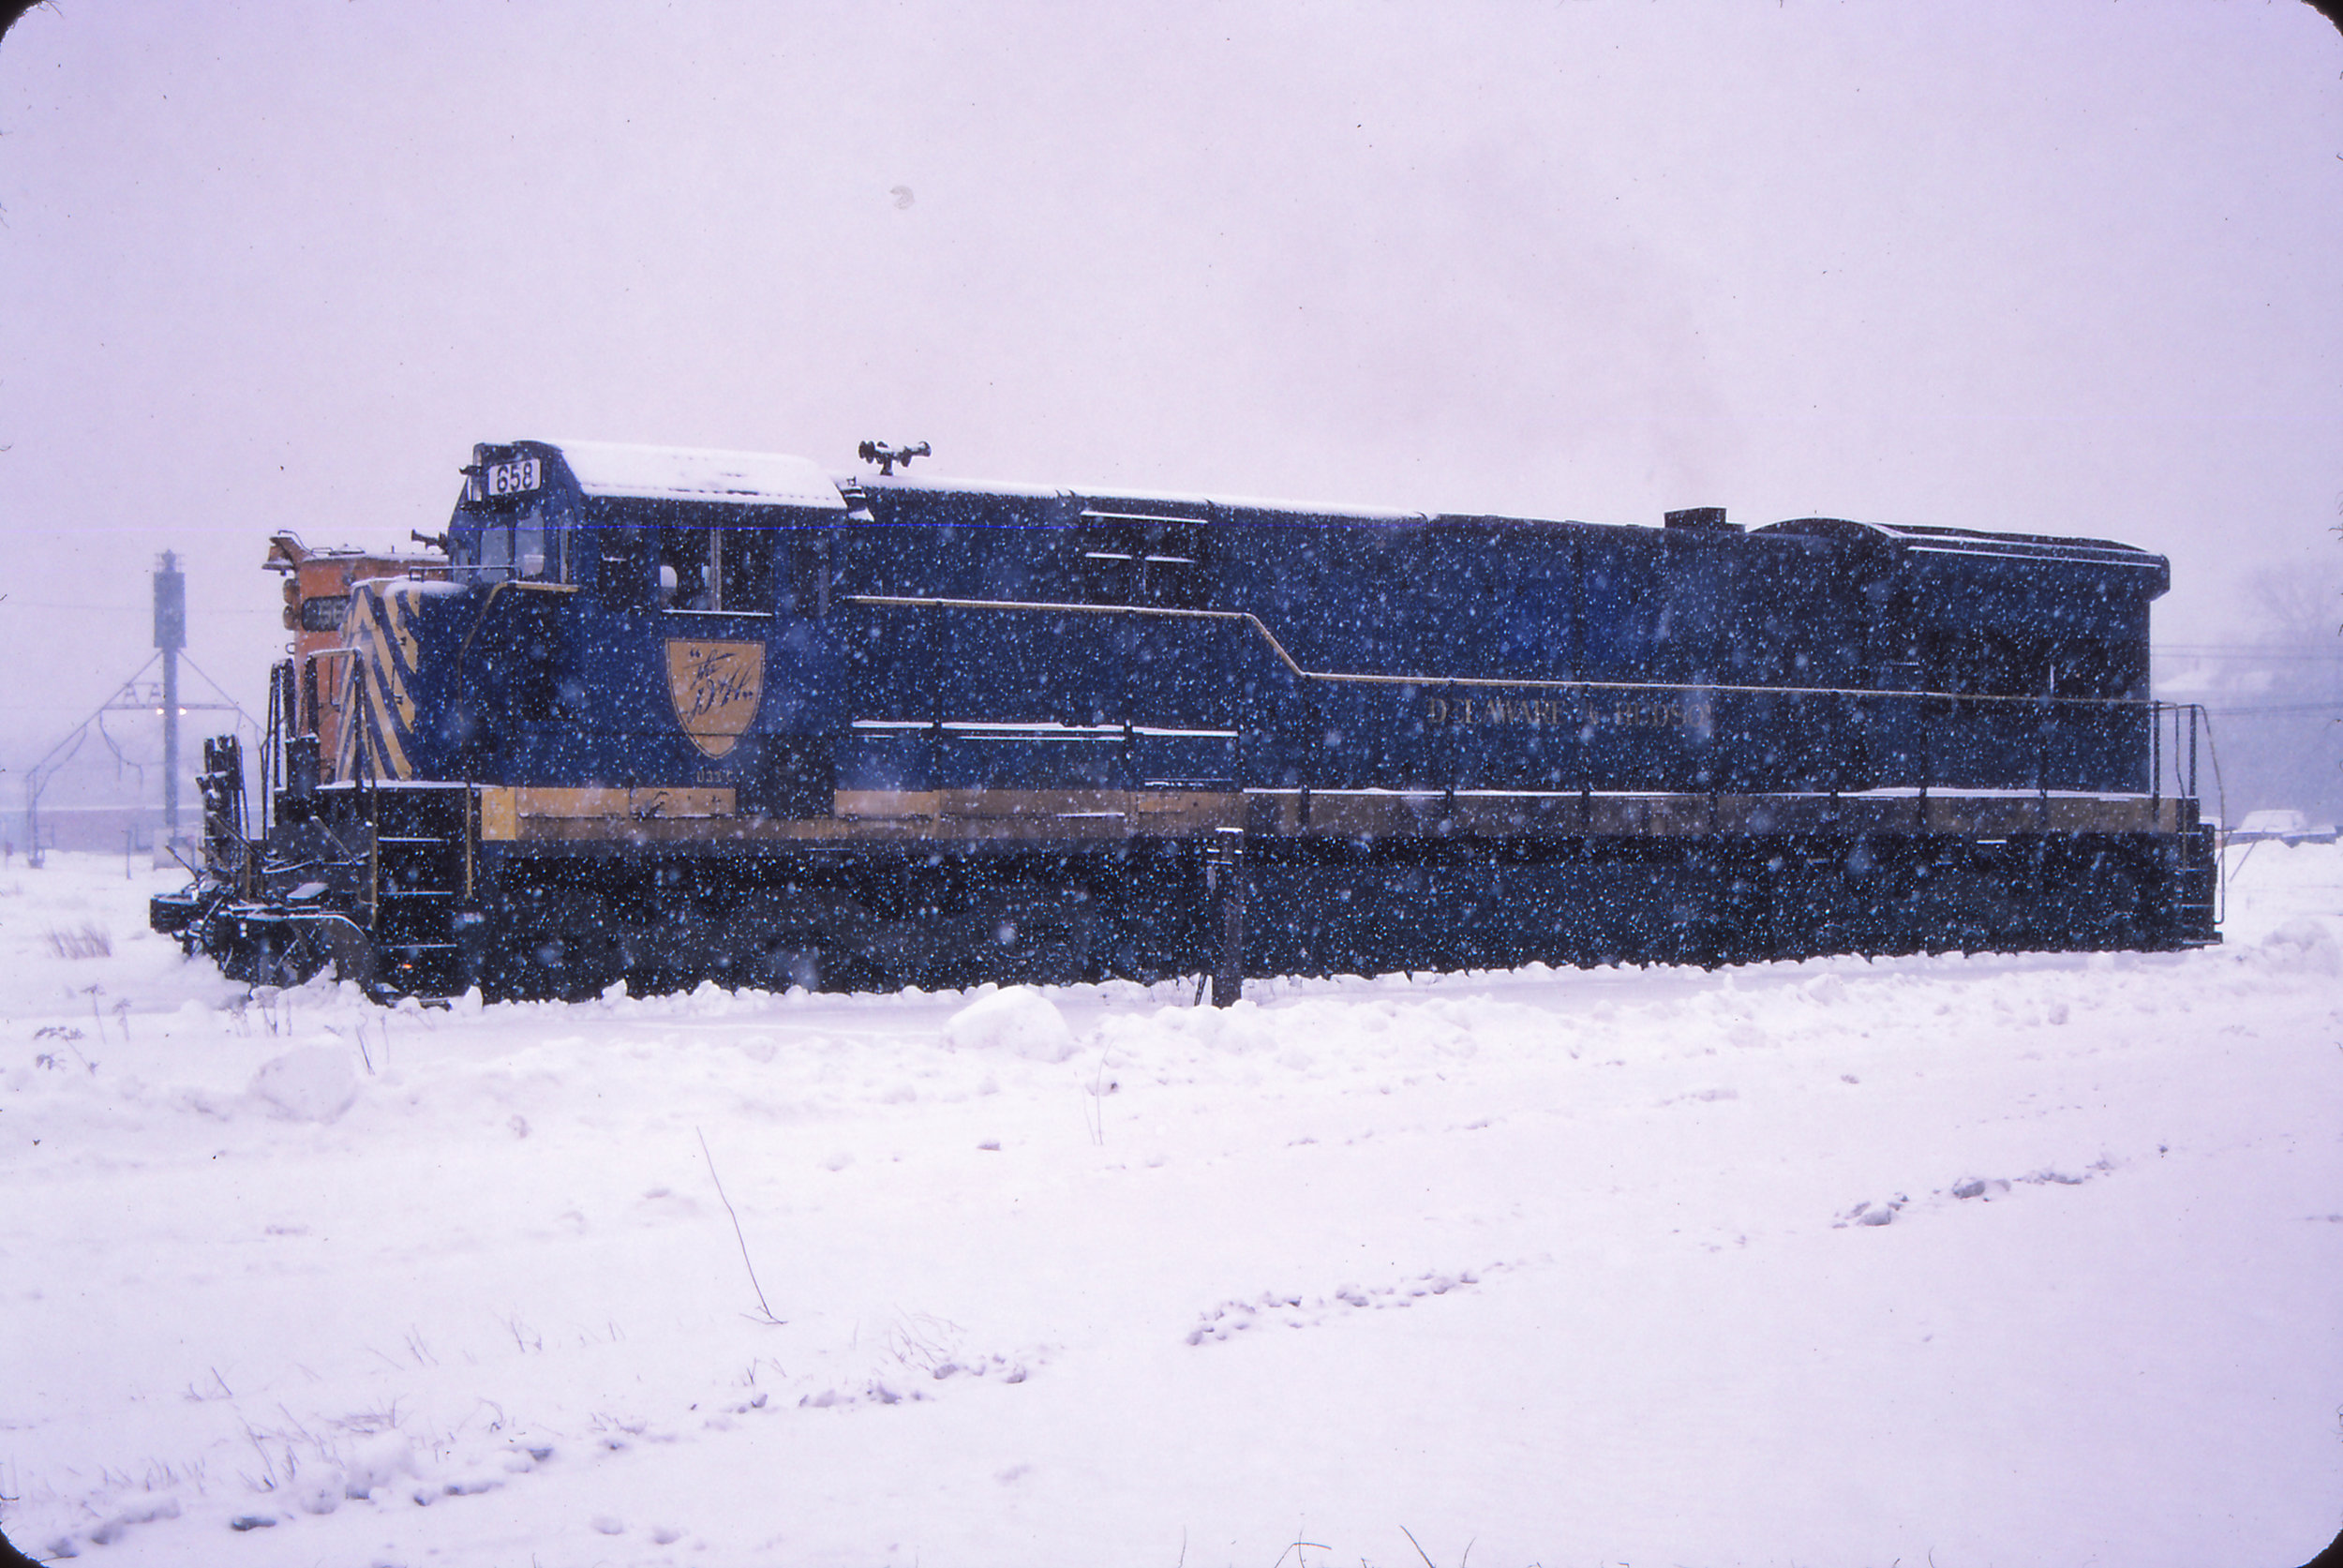 In December of 1987, D&H U33C 758 has been renumbered to 658 by Guilford, but still wears its coat of D&H blue. It was the only U33C to be so painted by the D&H. It is seen here in the former Maine Central Rigby Yard in Portland, ME.  Brian E. Loss photo, The Garbely Publishing Company collection